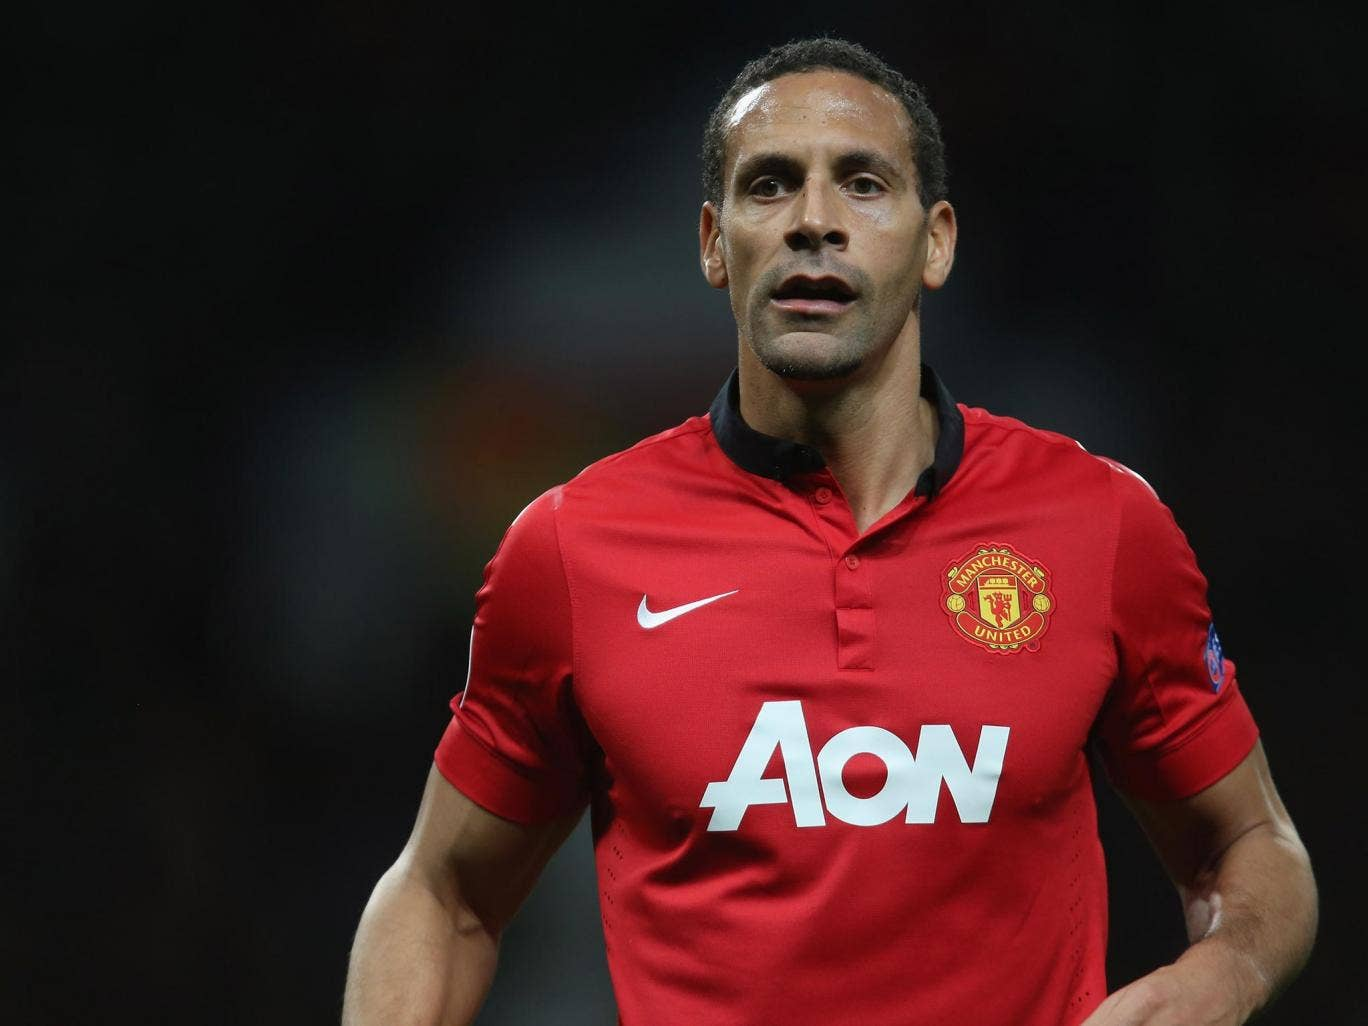 Rio Ferdinand has admitted he is too embarrassed to show his face in public due to Manchester United's poor form this season